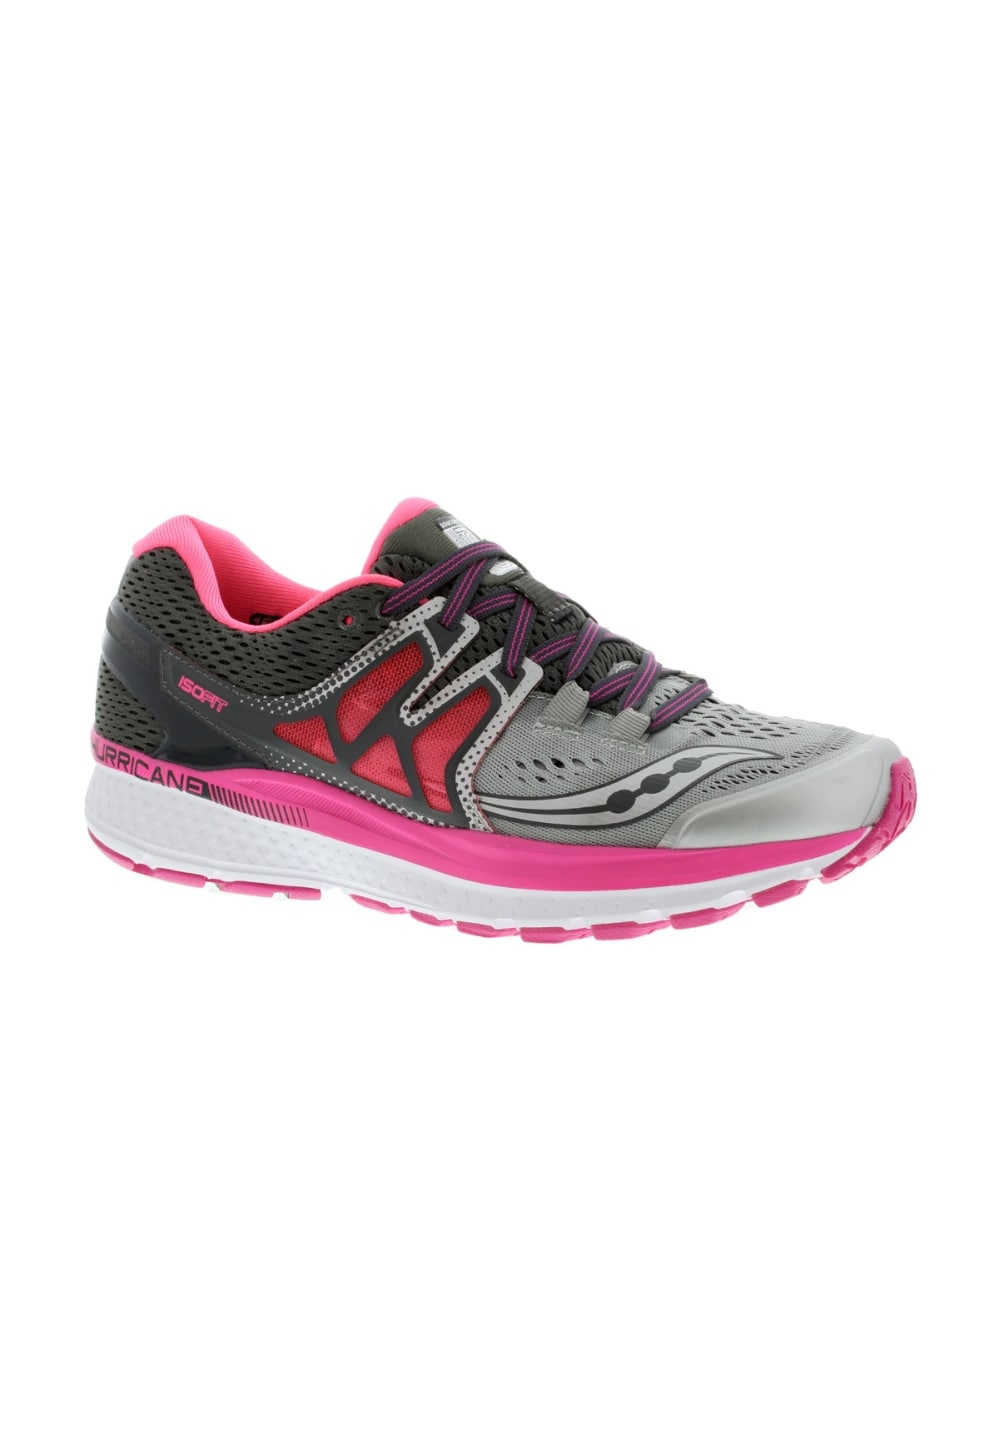 63ce35ce Saucony Hurricane Iso 3 - Running shoes for Women - Grey